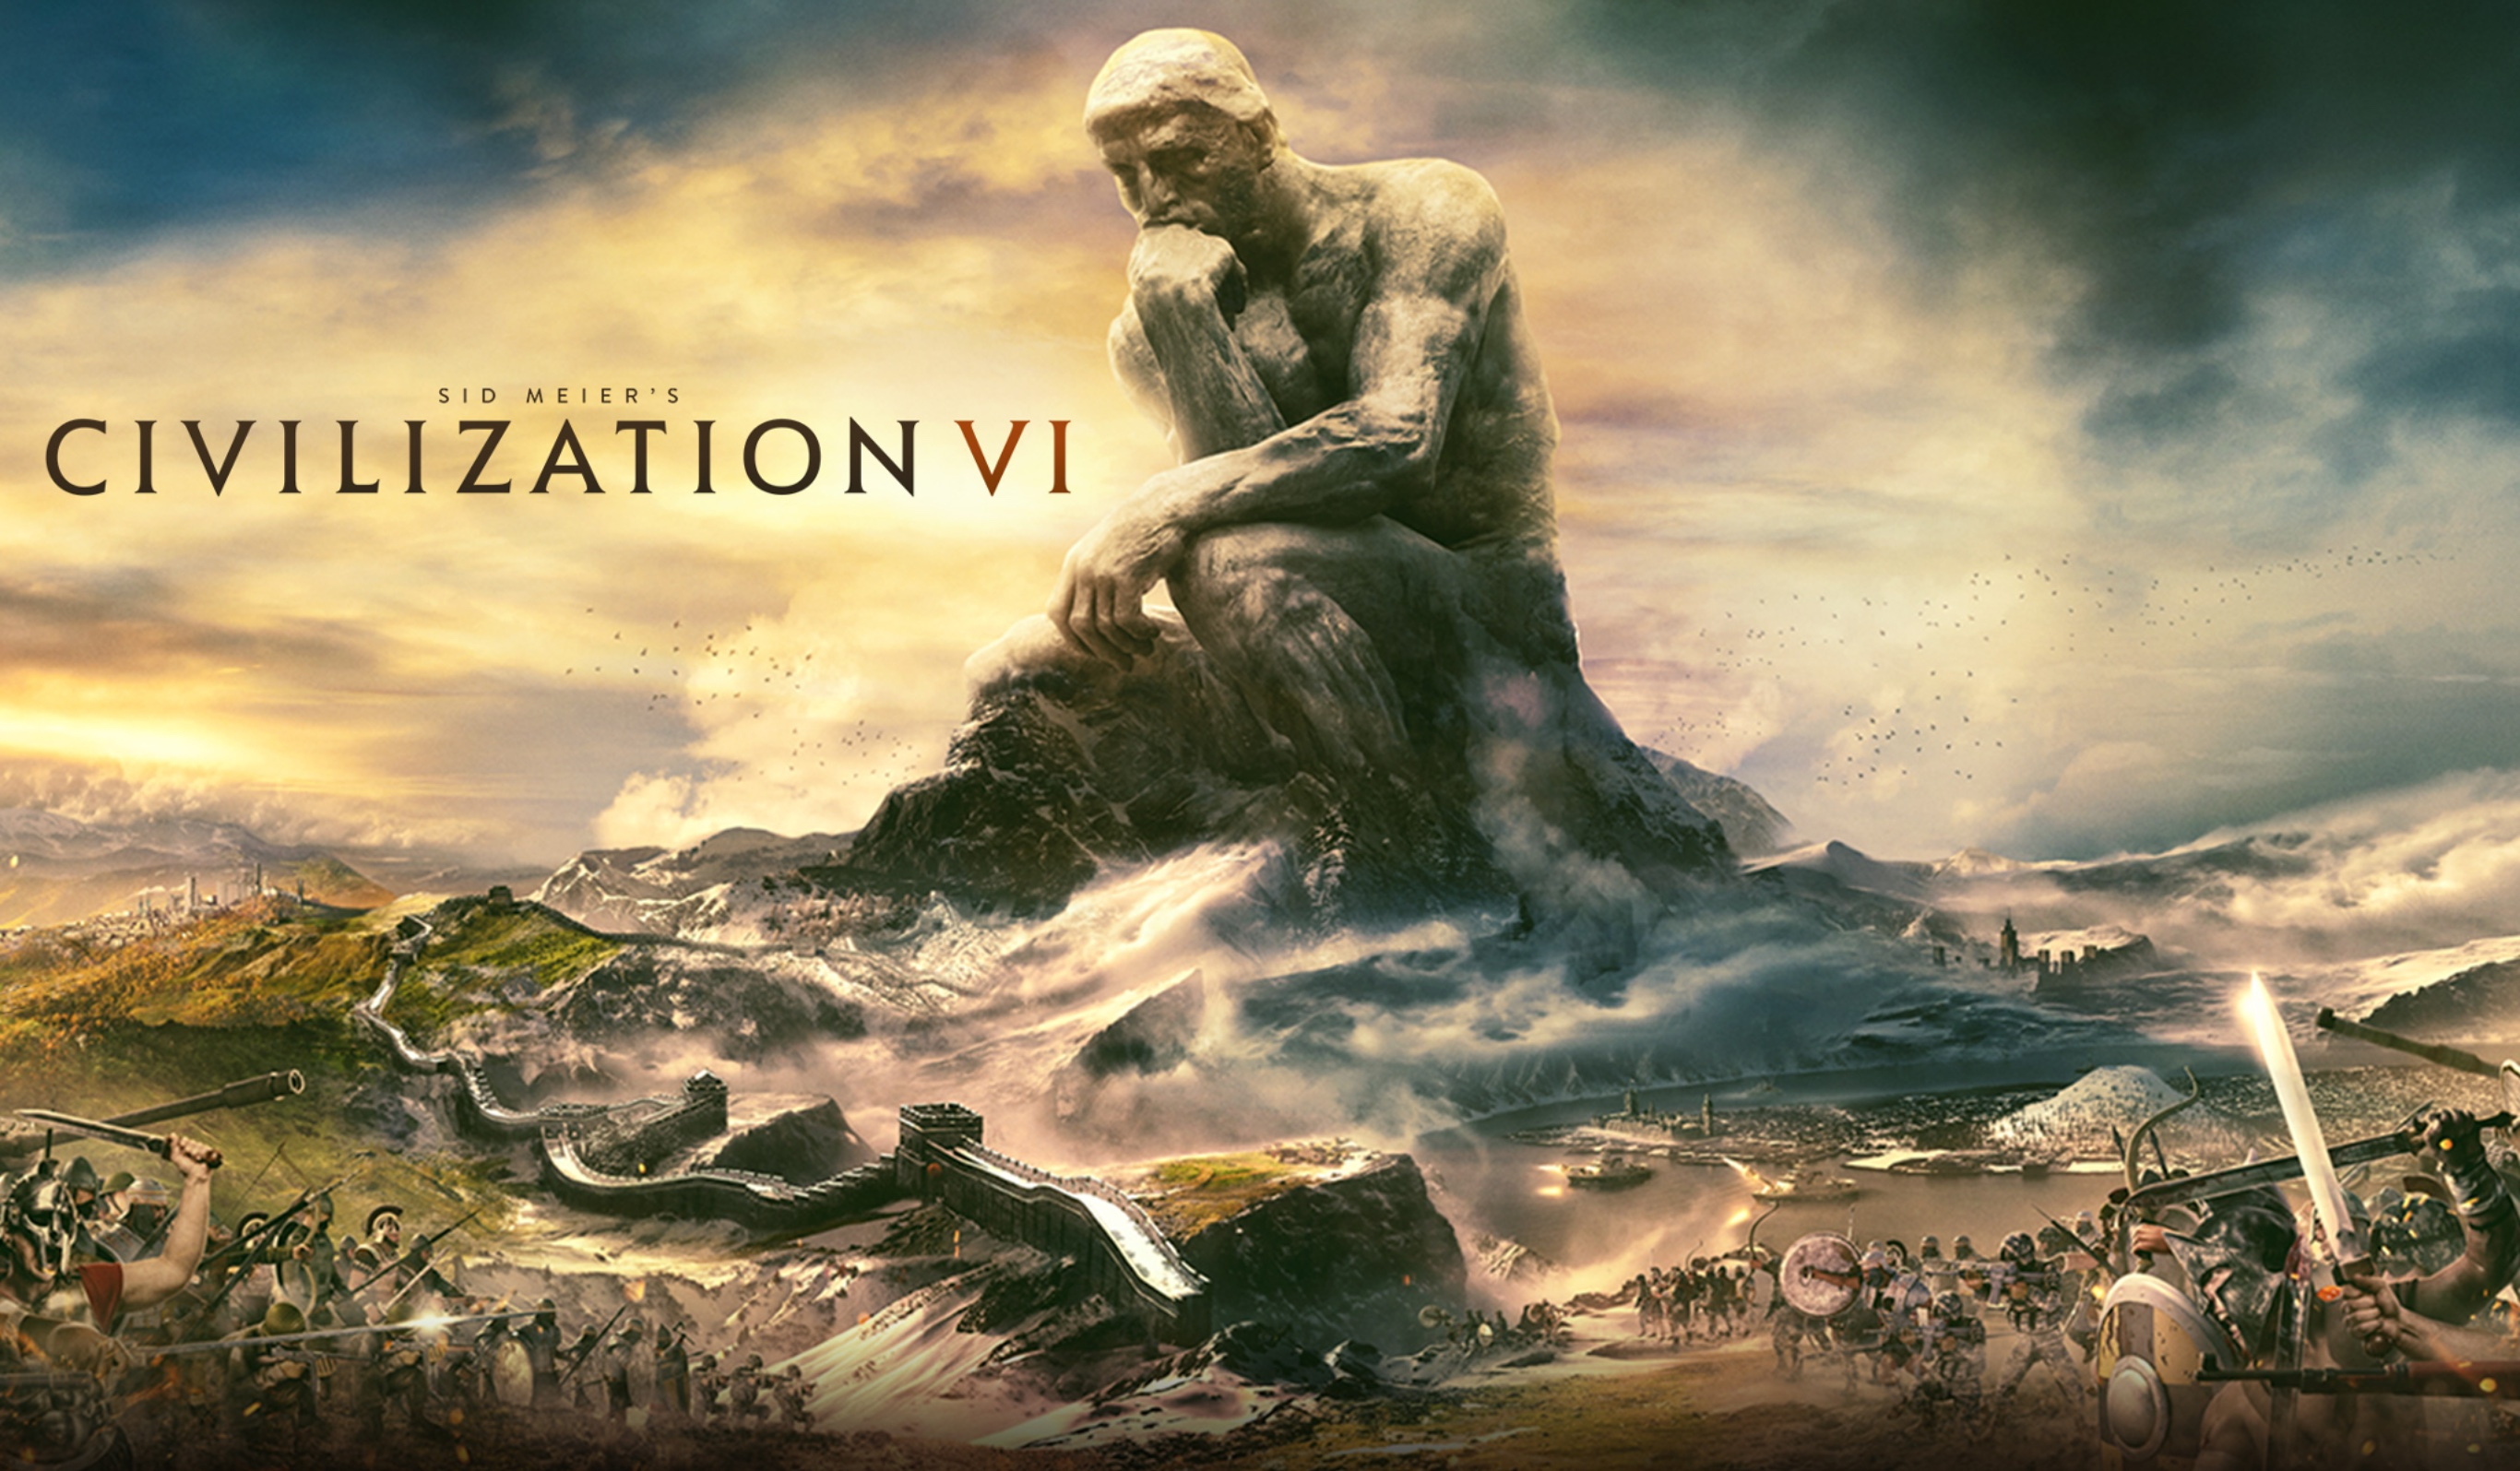 Civilization VI Expansions Appear To Be In Development For